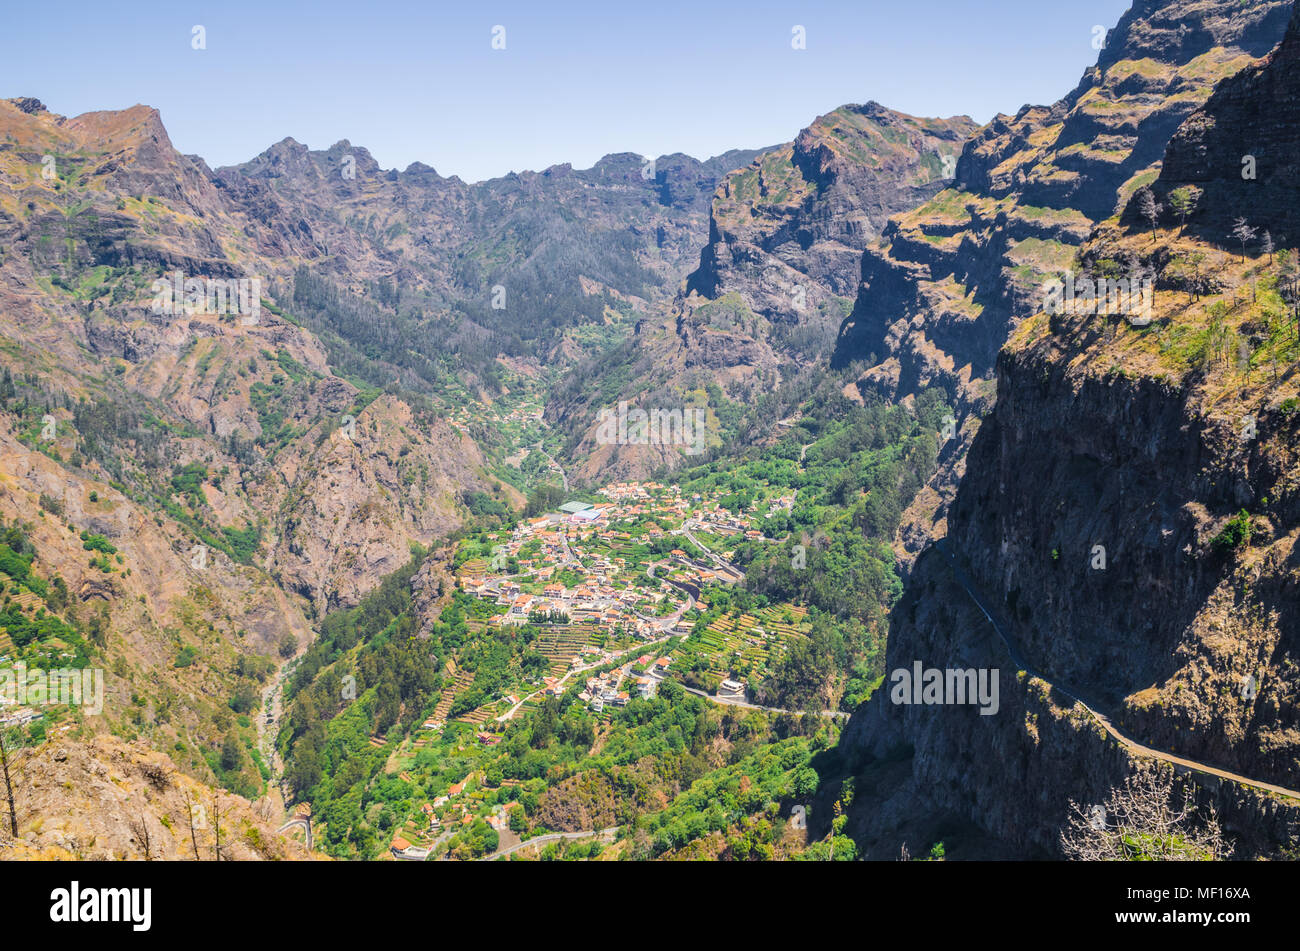 Curral das Freiras on Madeira Island, Portugal Stock Photo